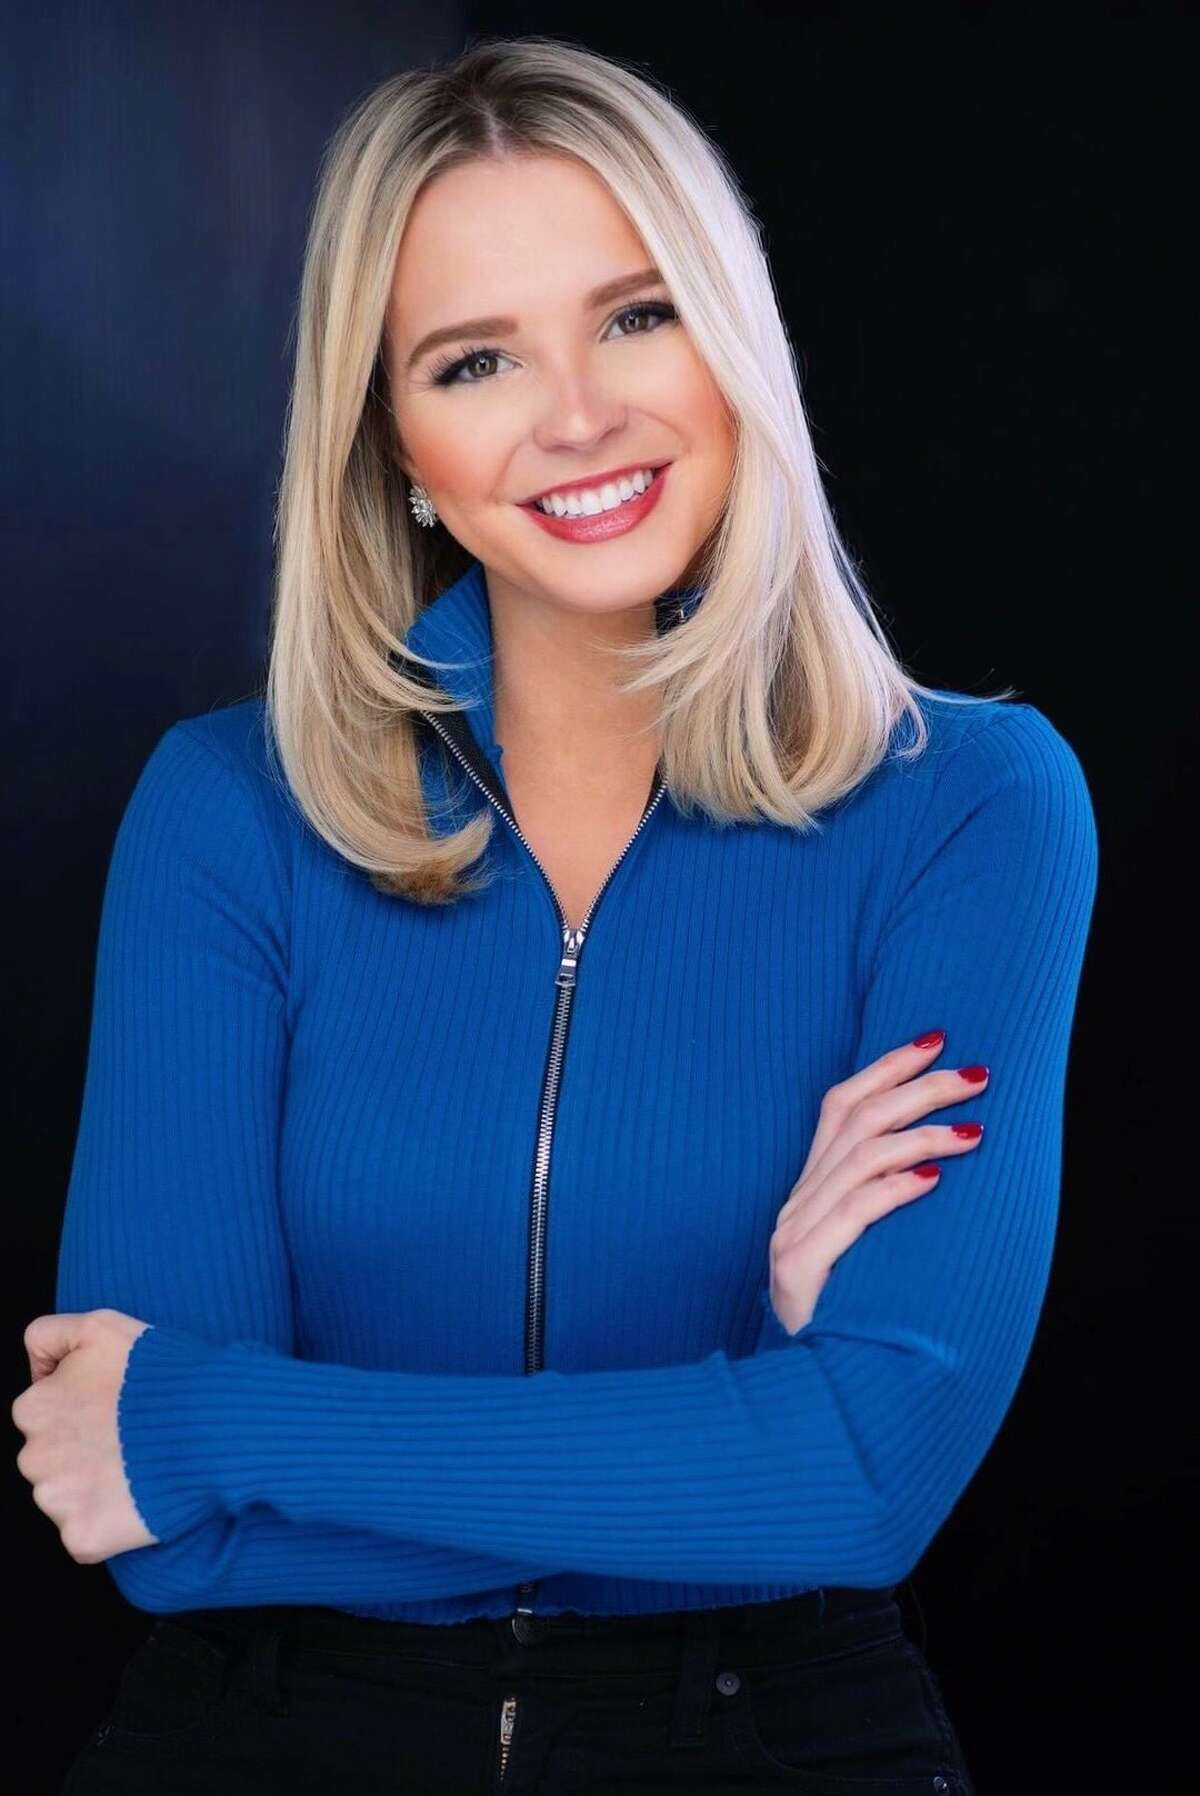 Lexi Nahl, a reporter at WTEN, is leaving the ABC affiliate at the end of May 2019.